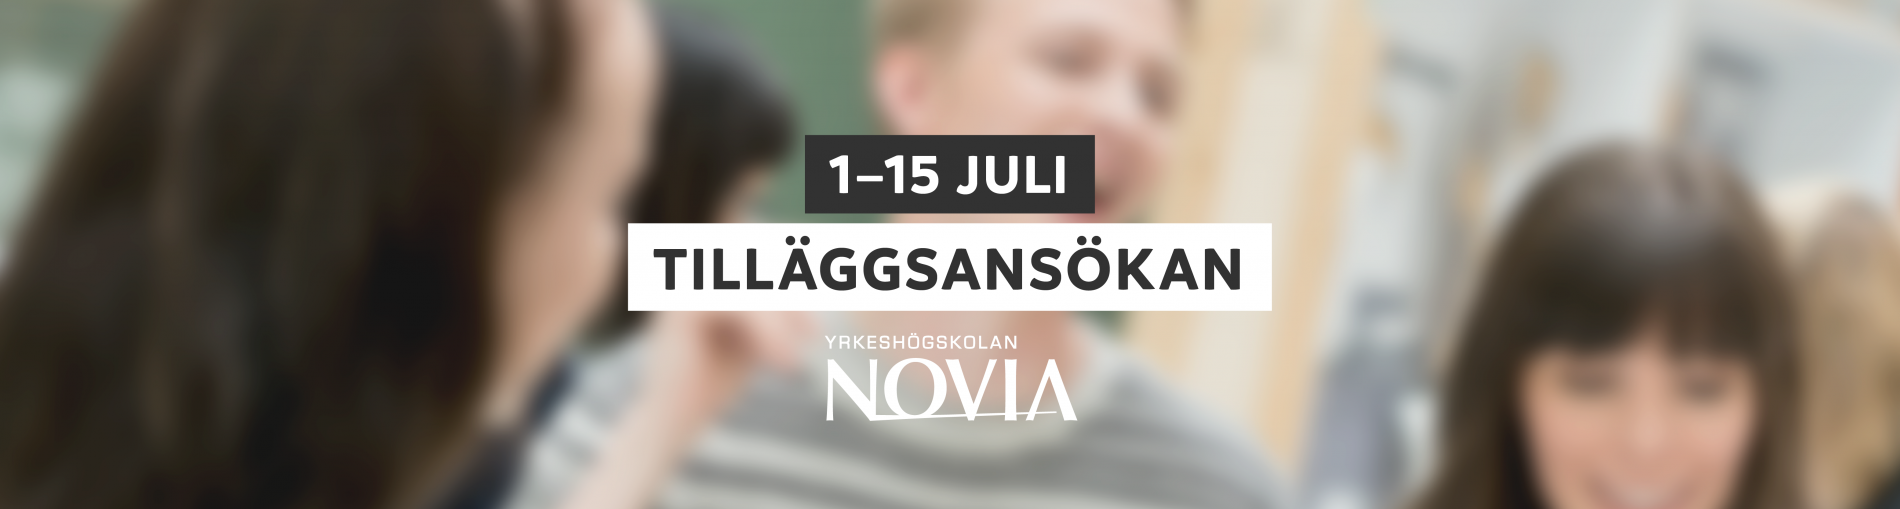 tillaggsansokan2019 06